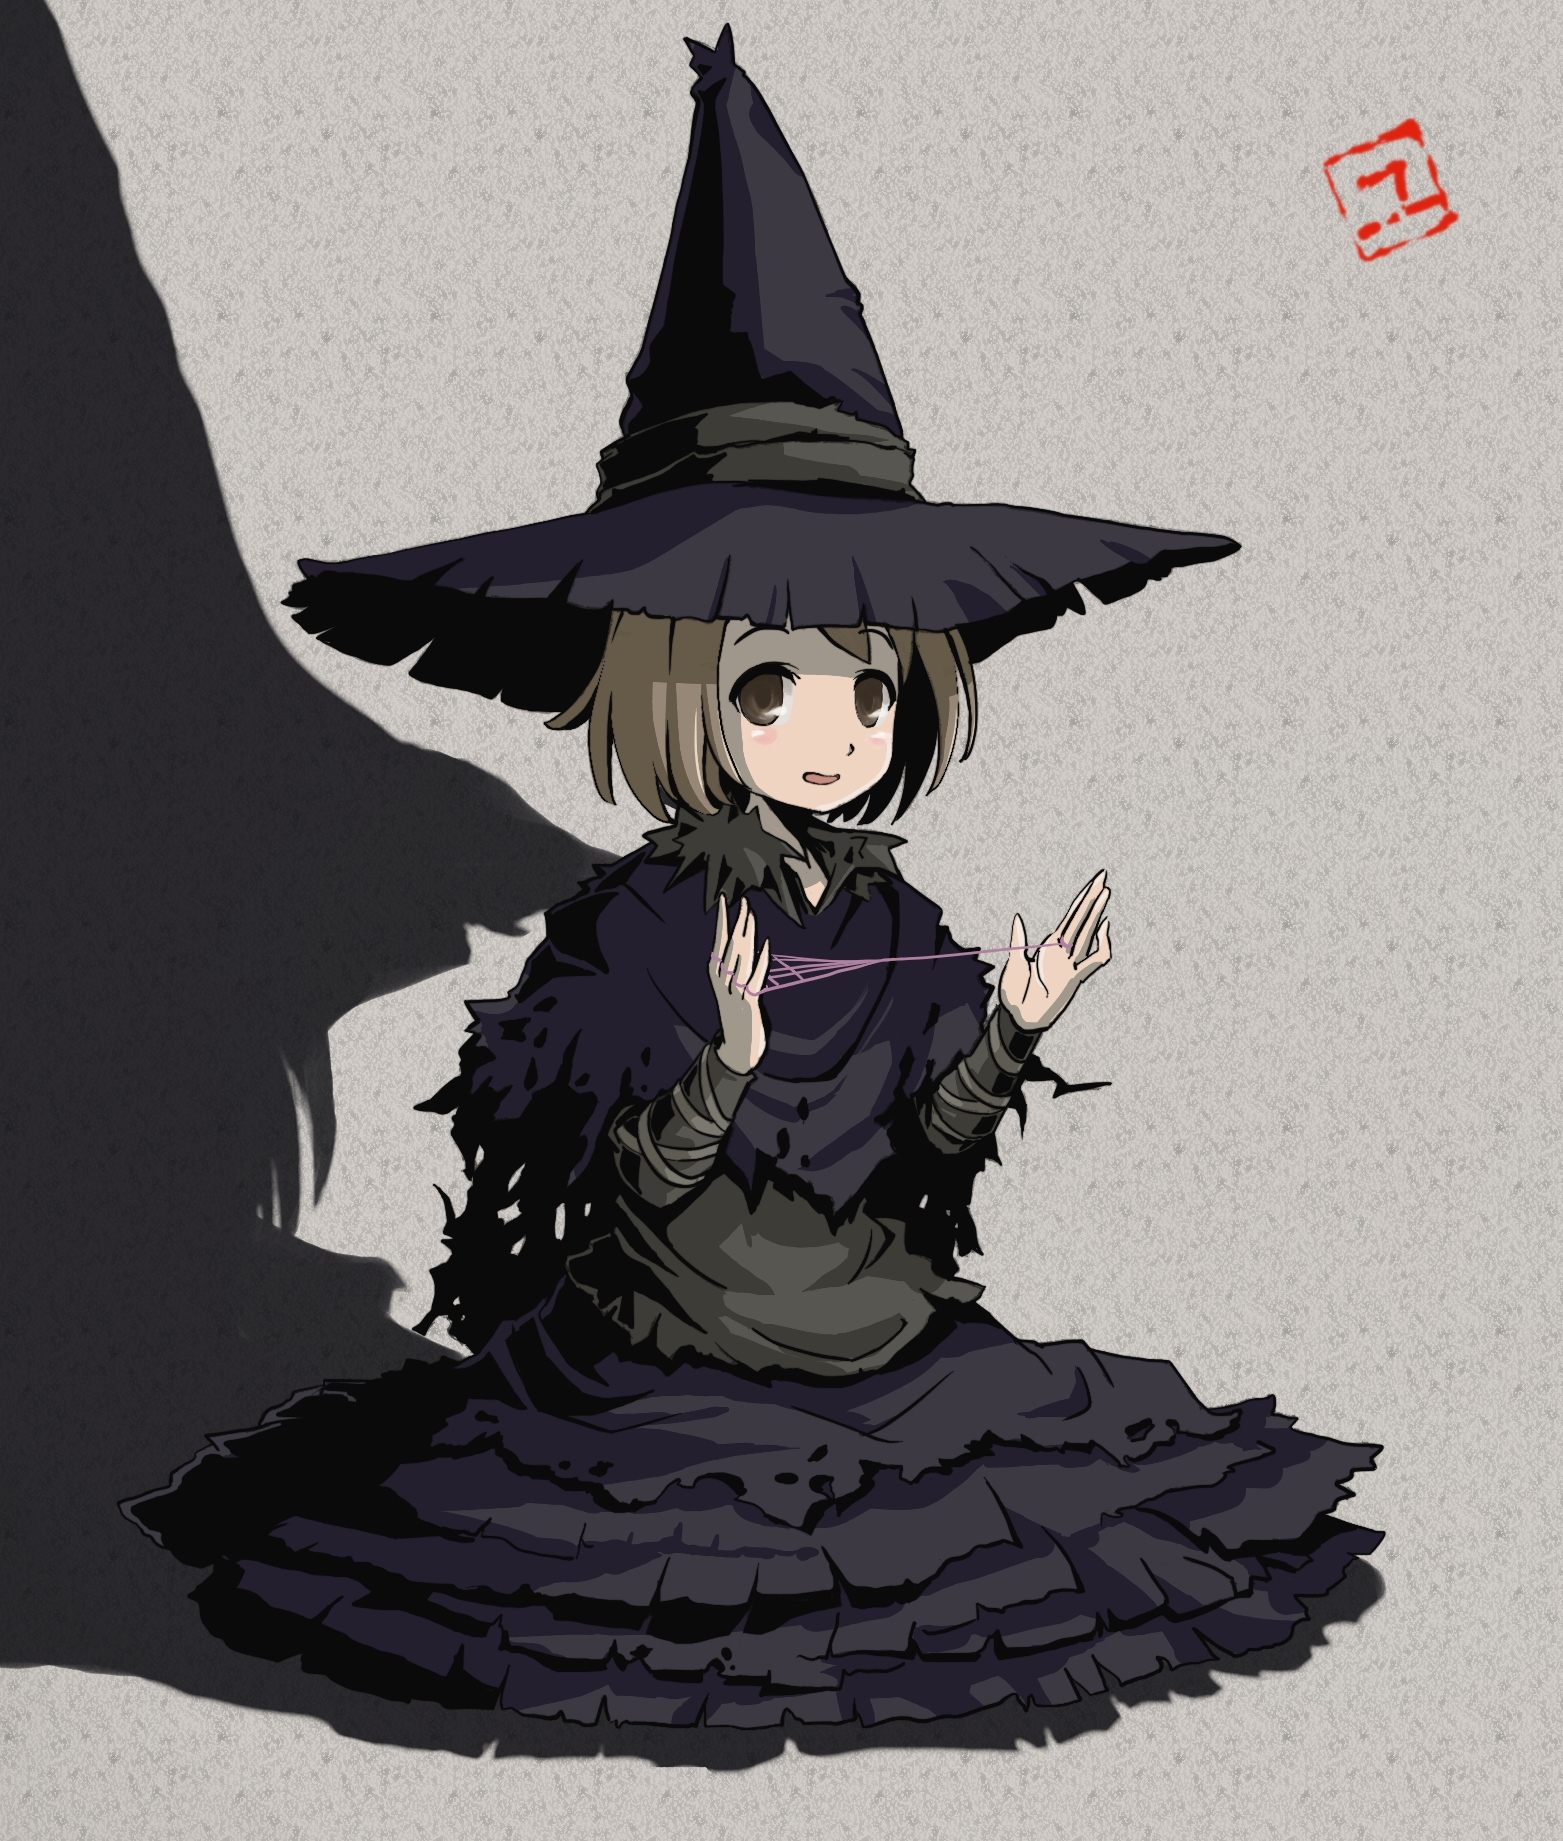 Yuria the witch